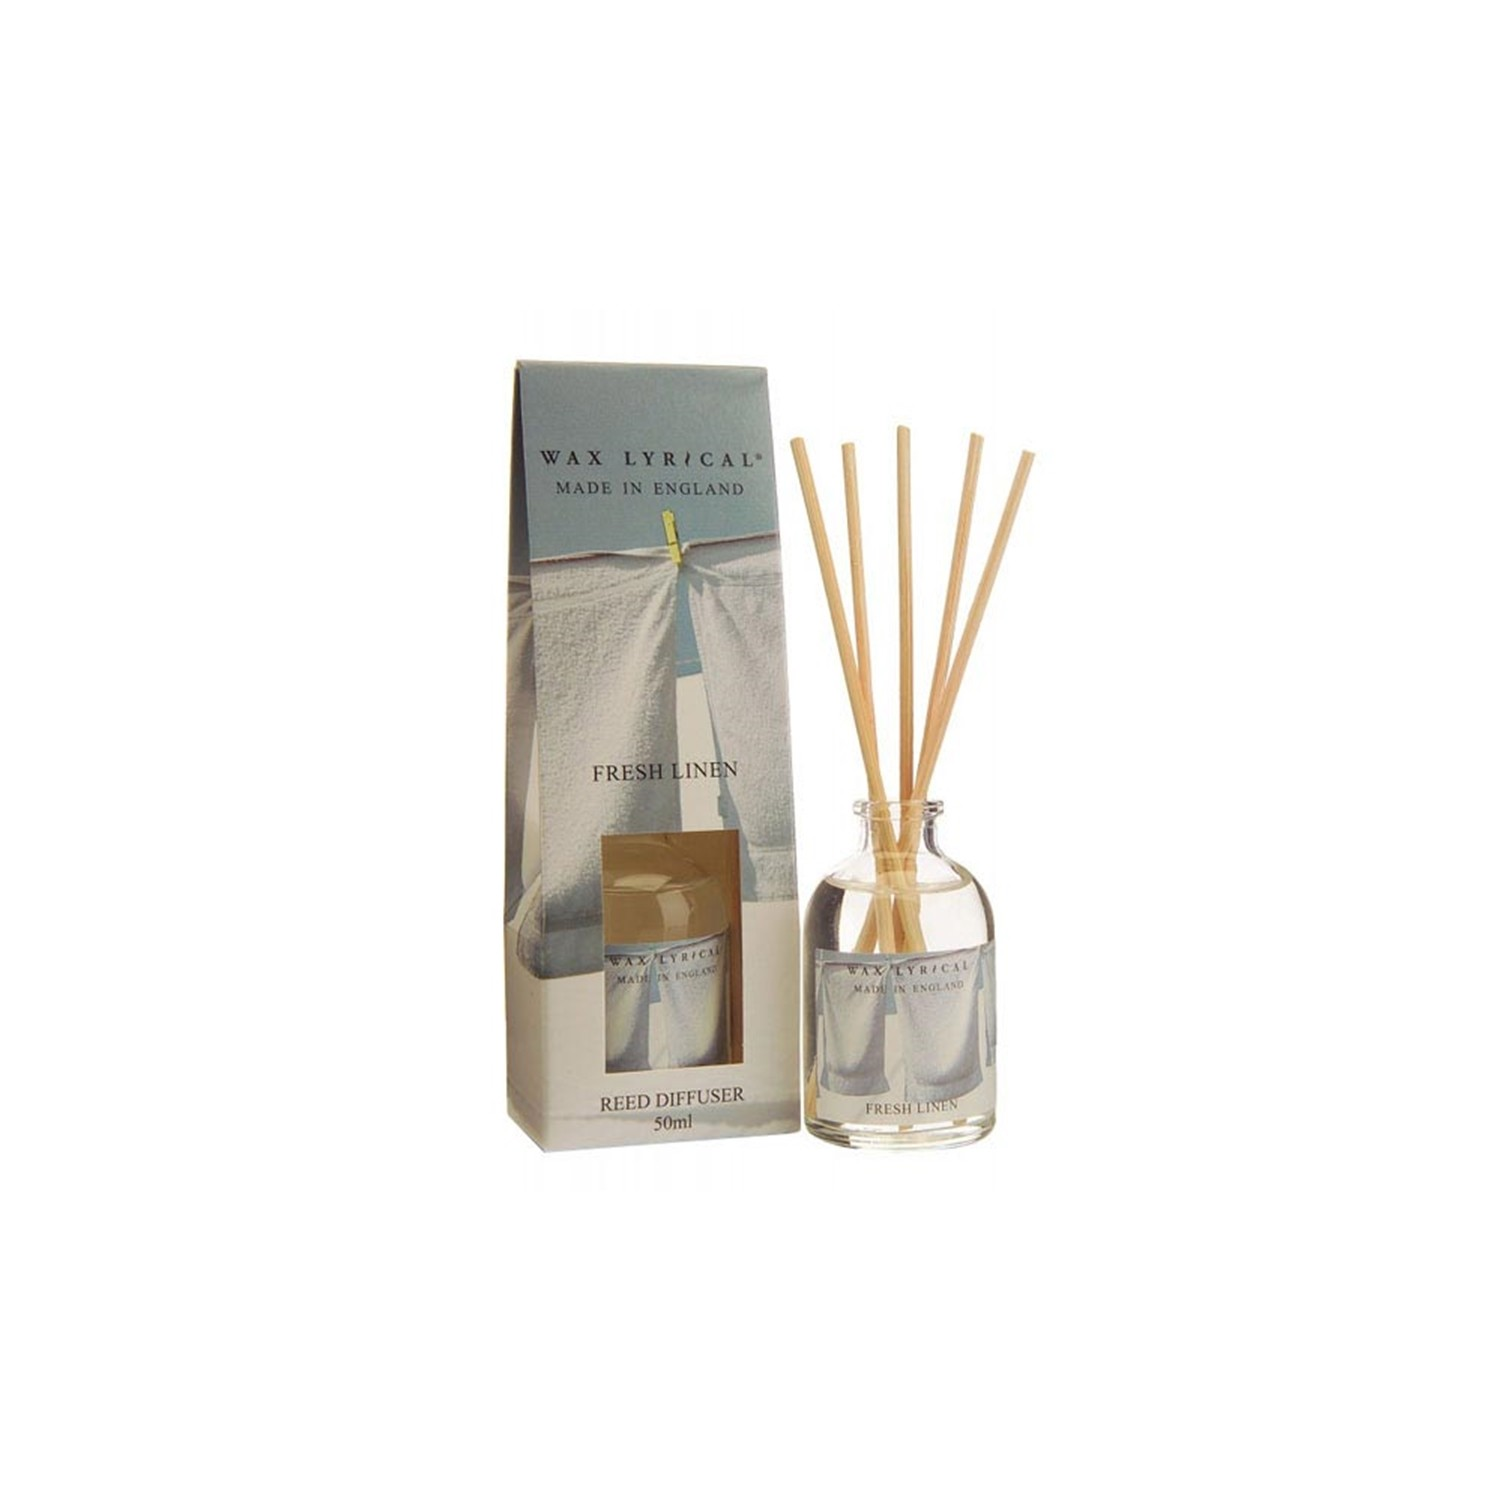 Airpure Reed Diffuser Home Collection Linen Room 30 Ml: Wax Lyrical Reed Diffuser, Fresh Linen, 50ml